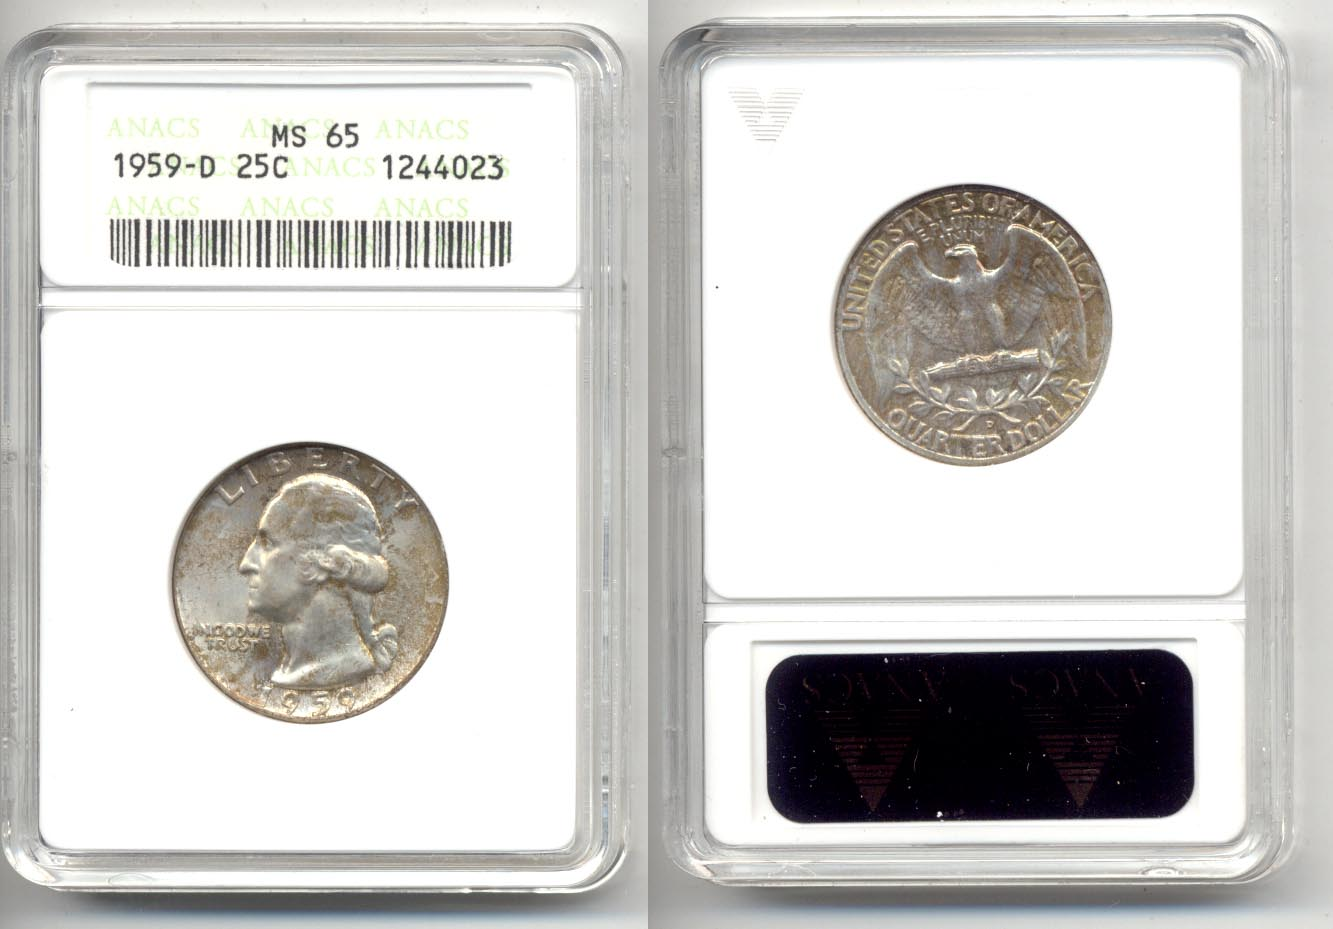 1959-D Washington Quarter ANACS MS-65